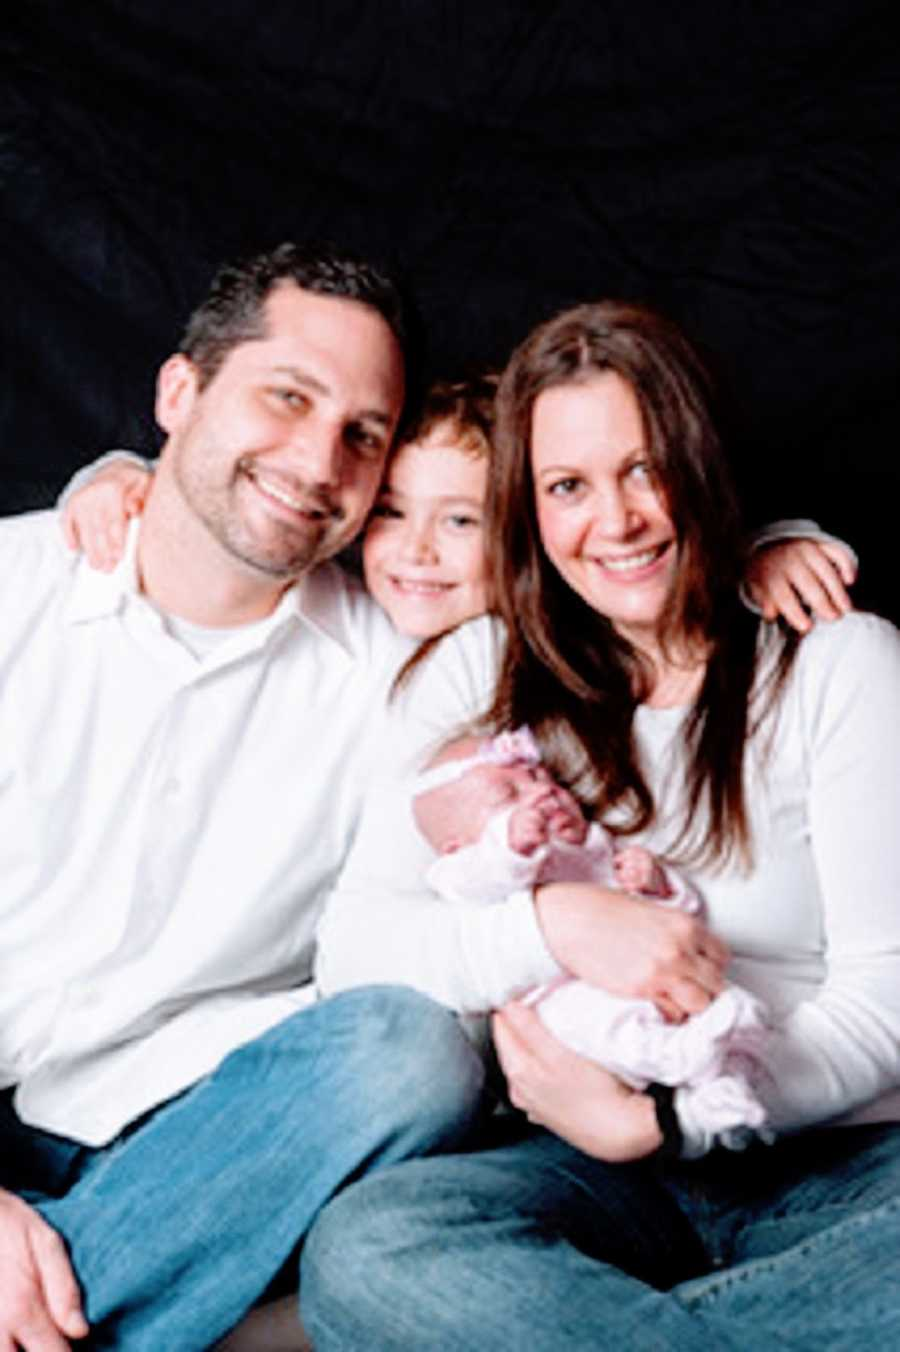 A family of four with their newborn baby girl